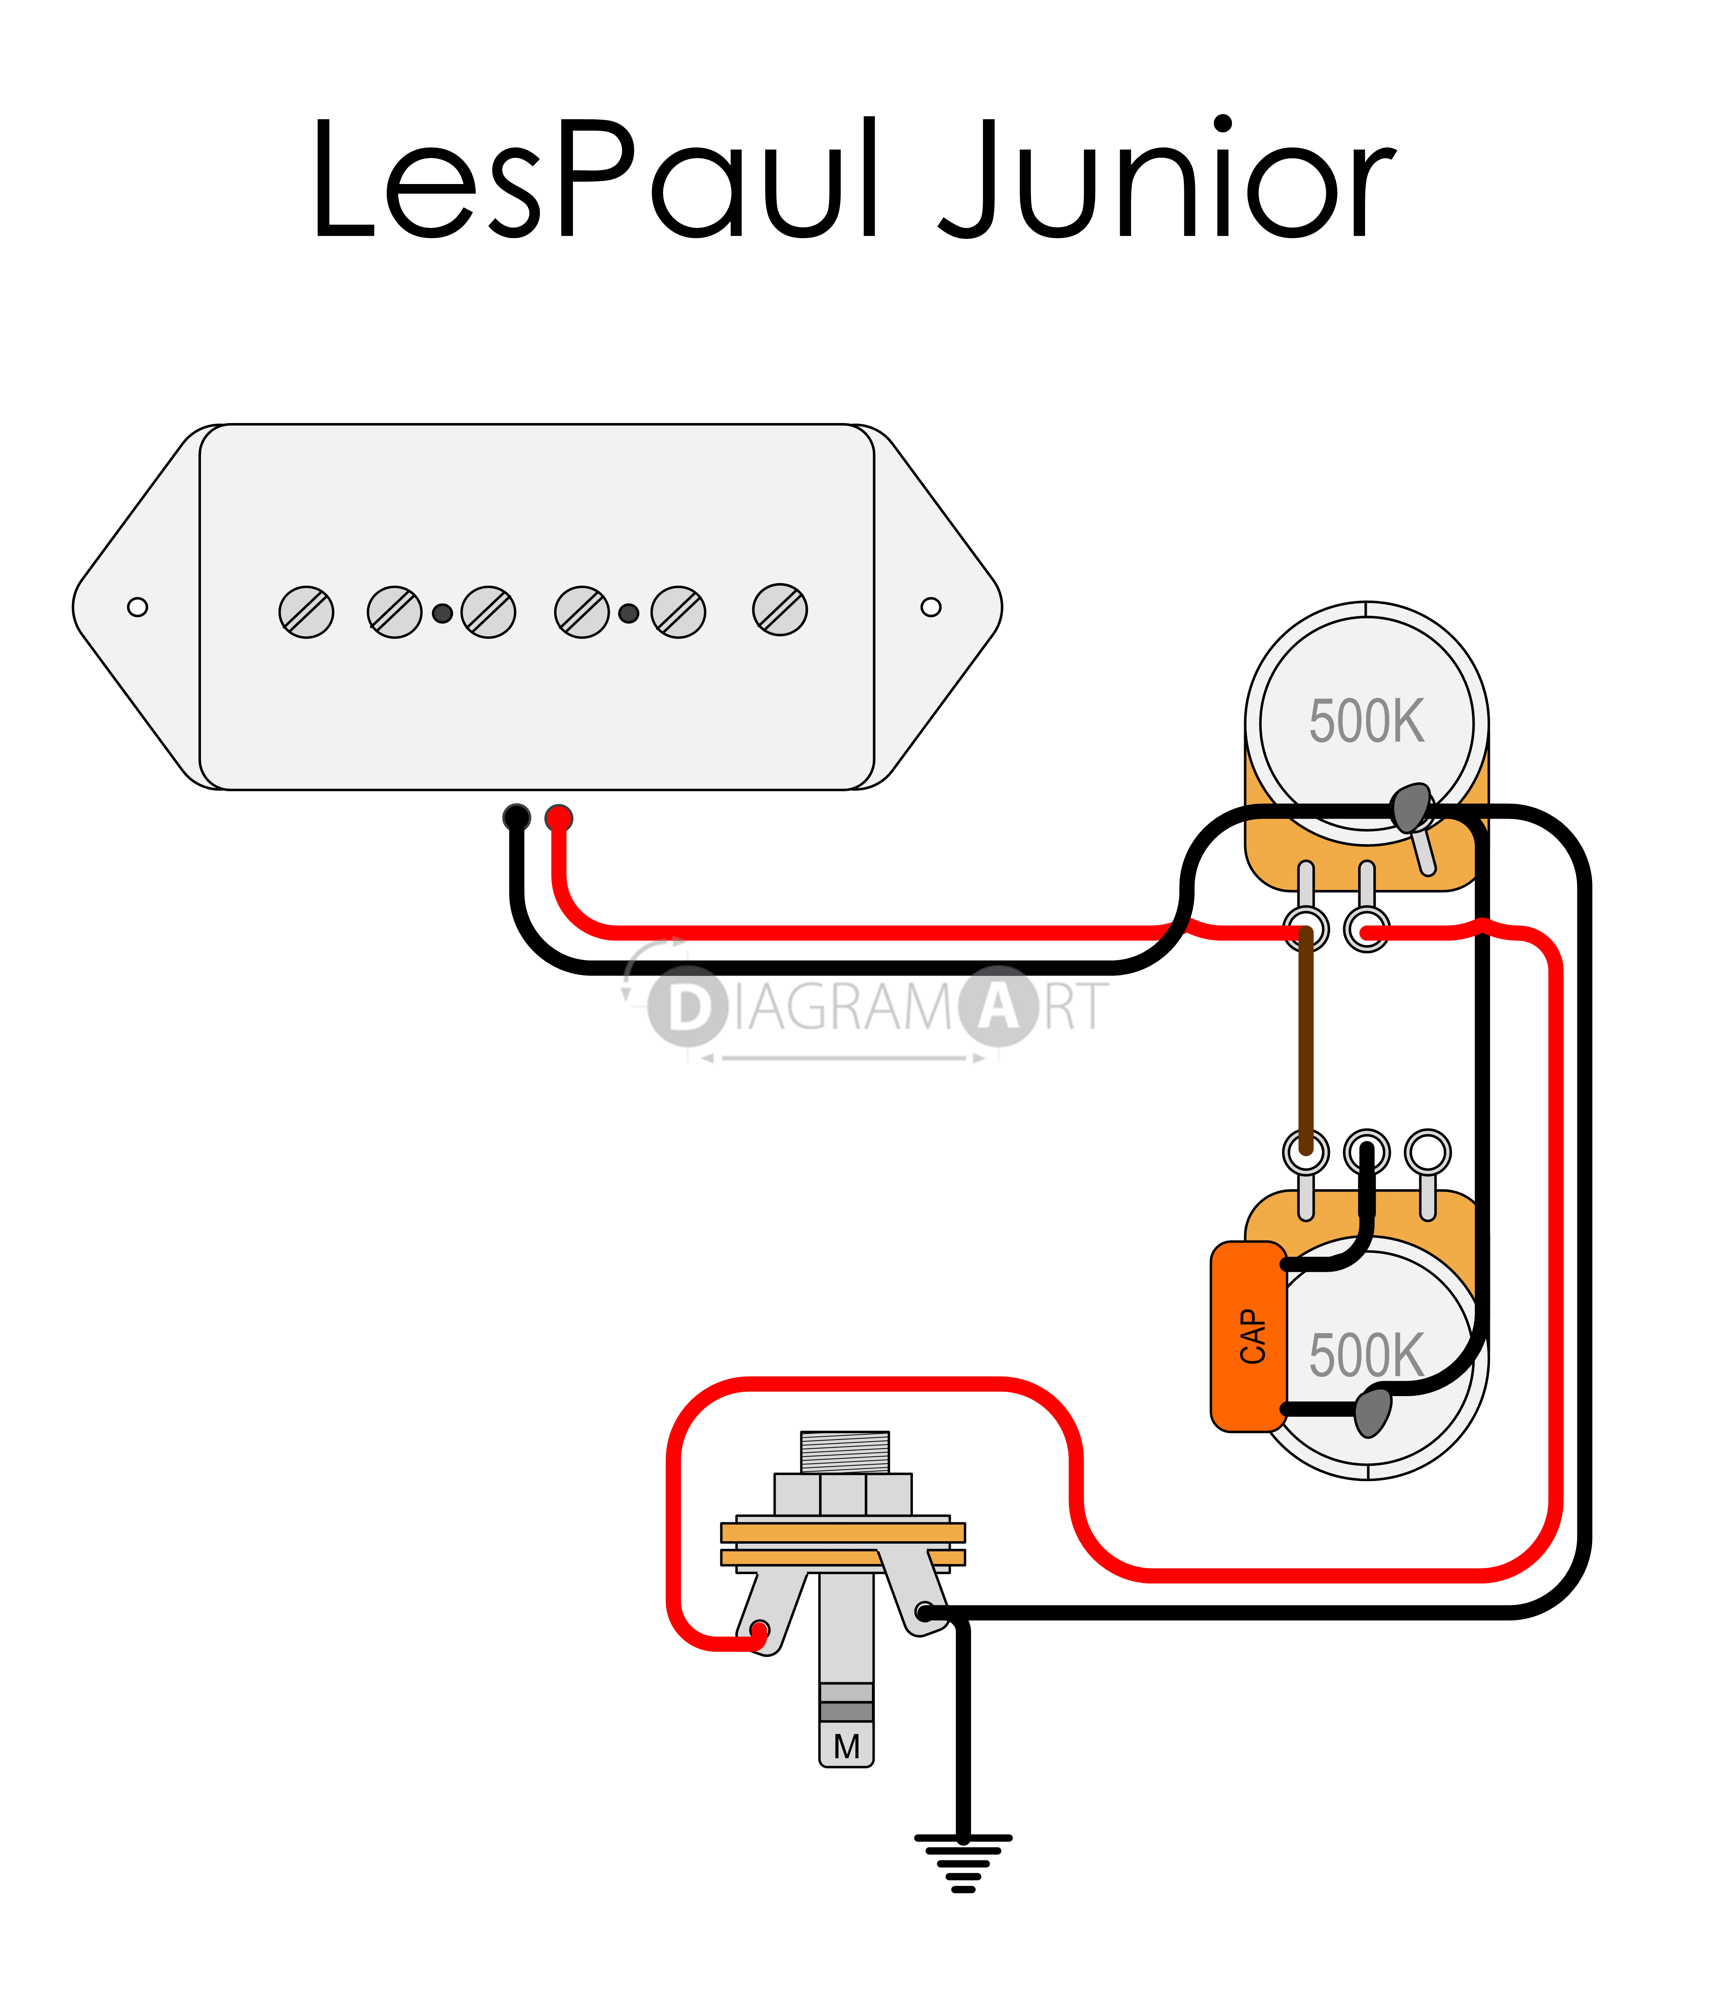 Epiphone les paul custom pro wiring diagram wiring diagram lovely epiphone sg special wiring diagram ideas the best epiphone les paul wiring schematic epiphone les paul custom pro wiring diagram asfbconference2016 Images